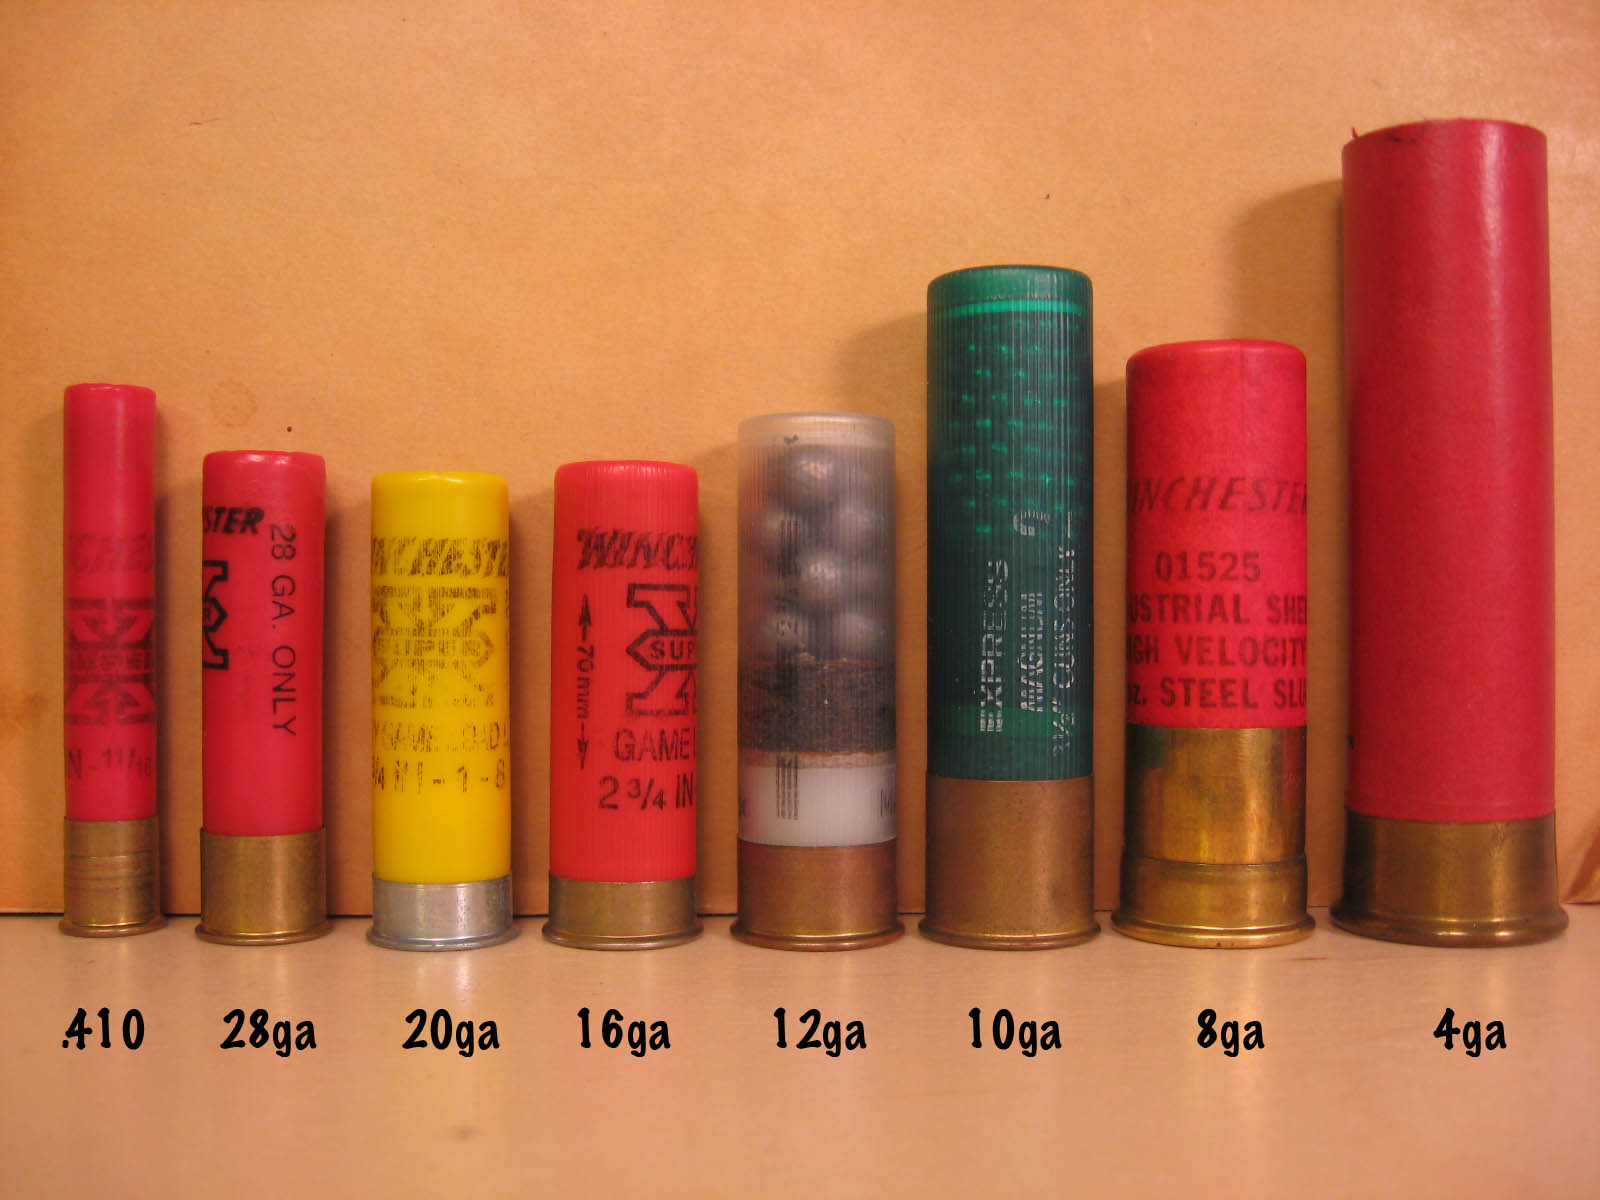 Pin 12 ga ammo on pinterest